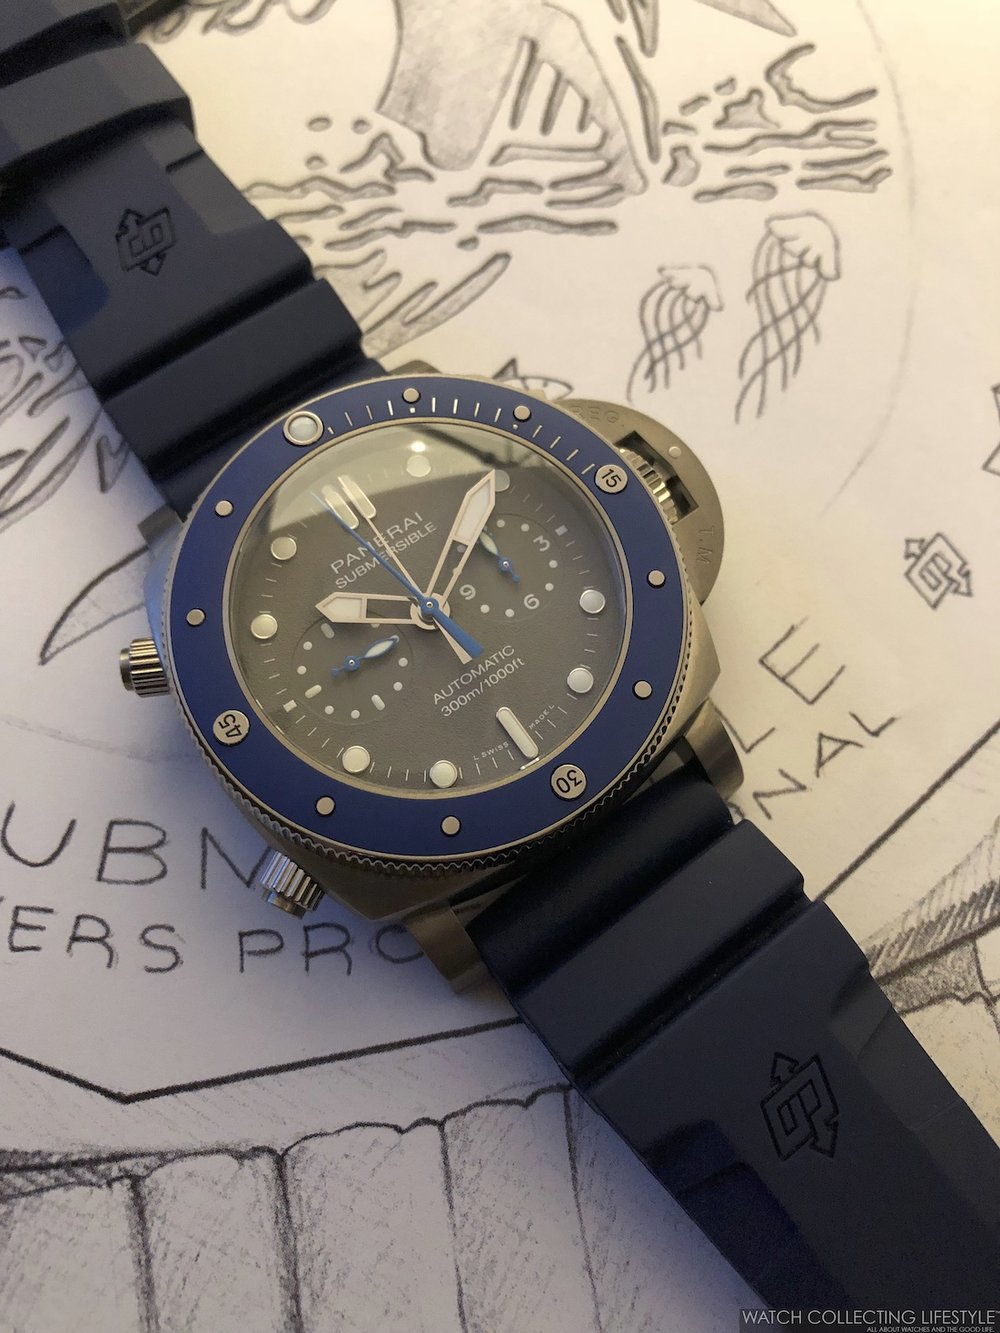 Panerai Submersible Chrono Guillaume Nery Edition 47 mm PAM982